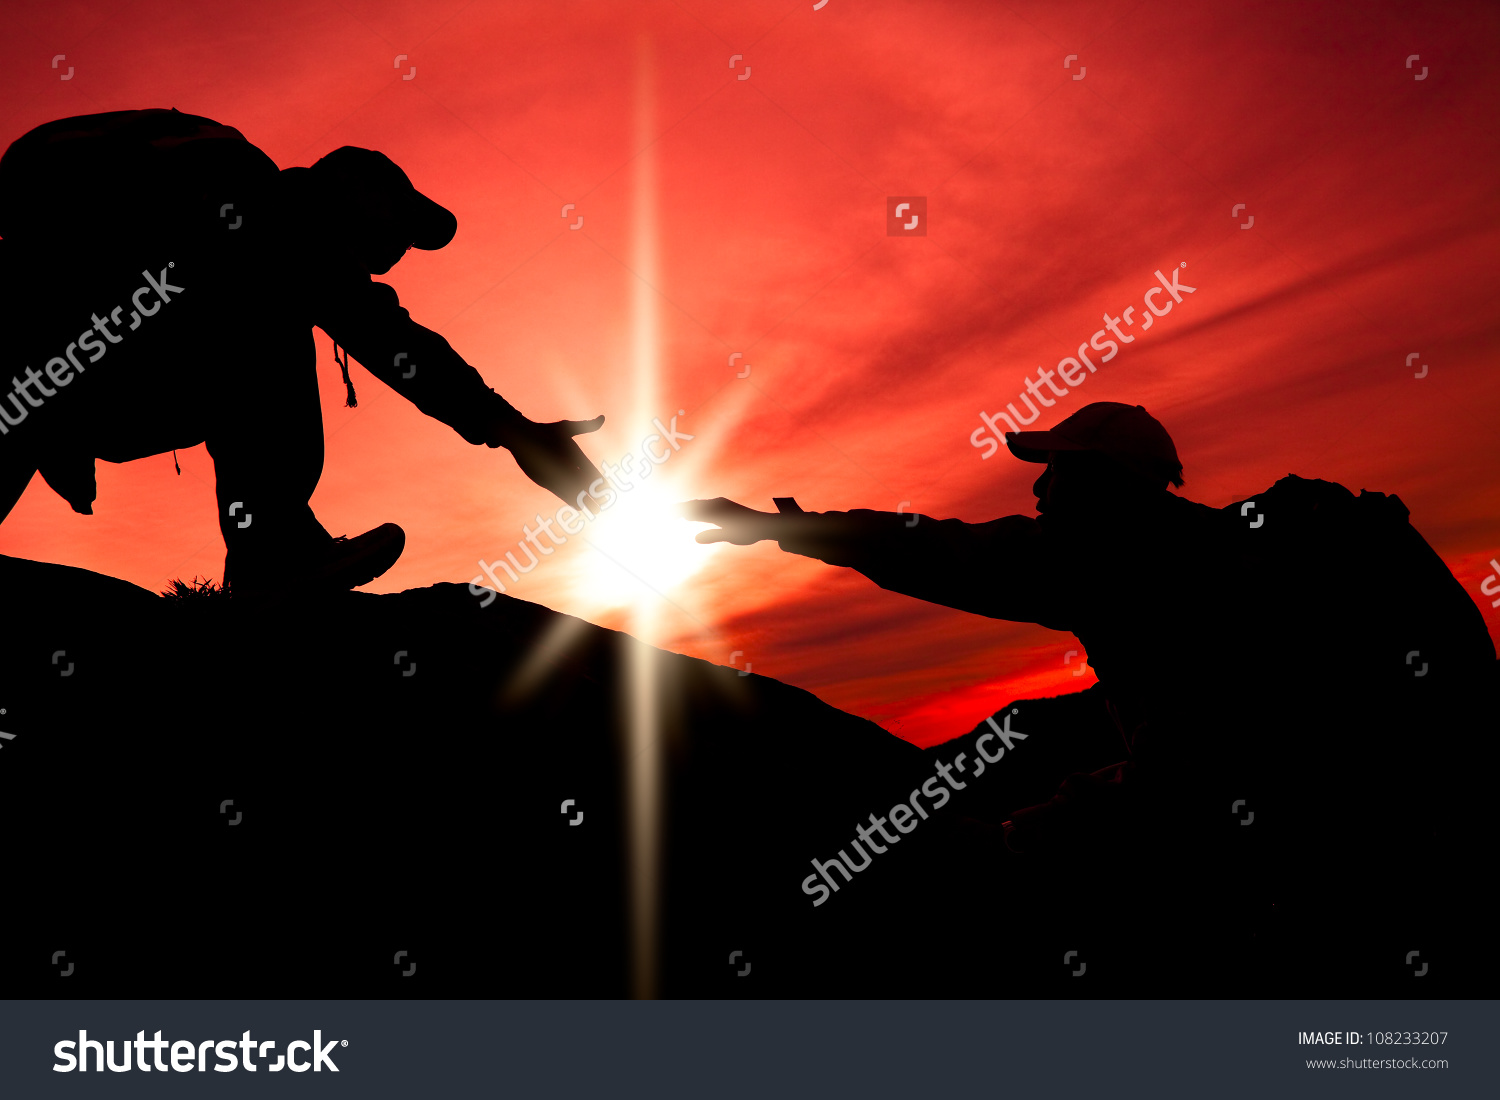 Silhouette Helping Hand Between Two Climber Stock Photo 108233207.